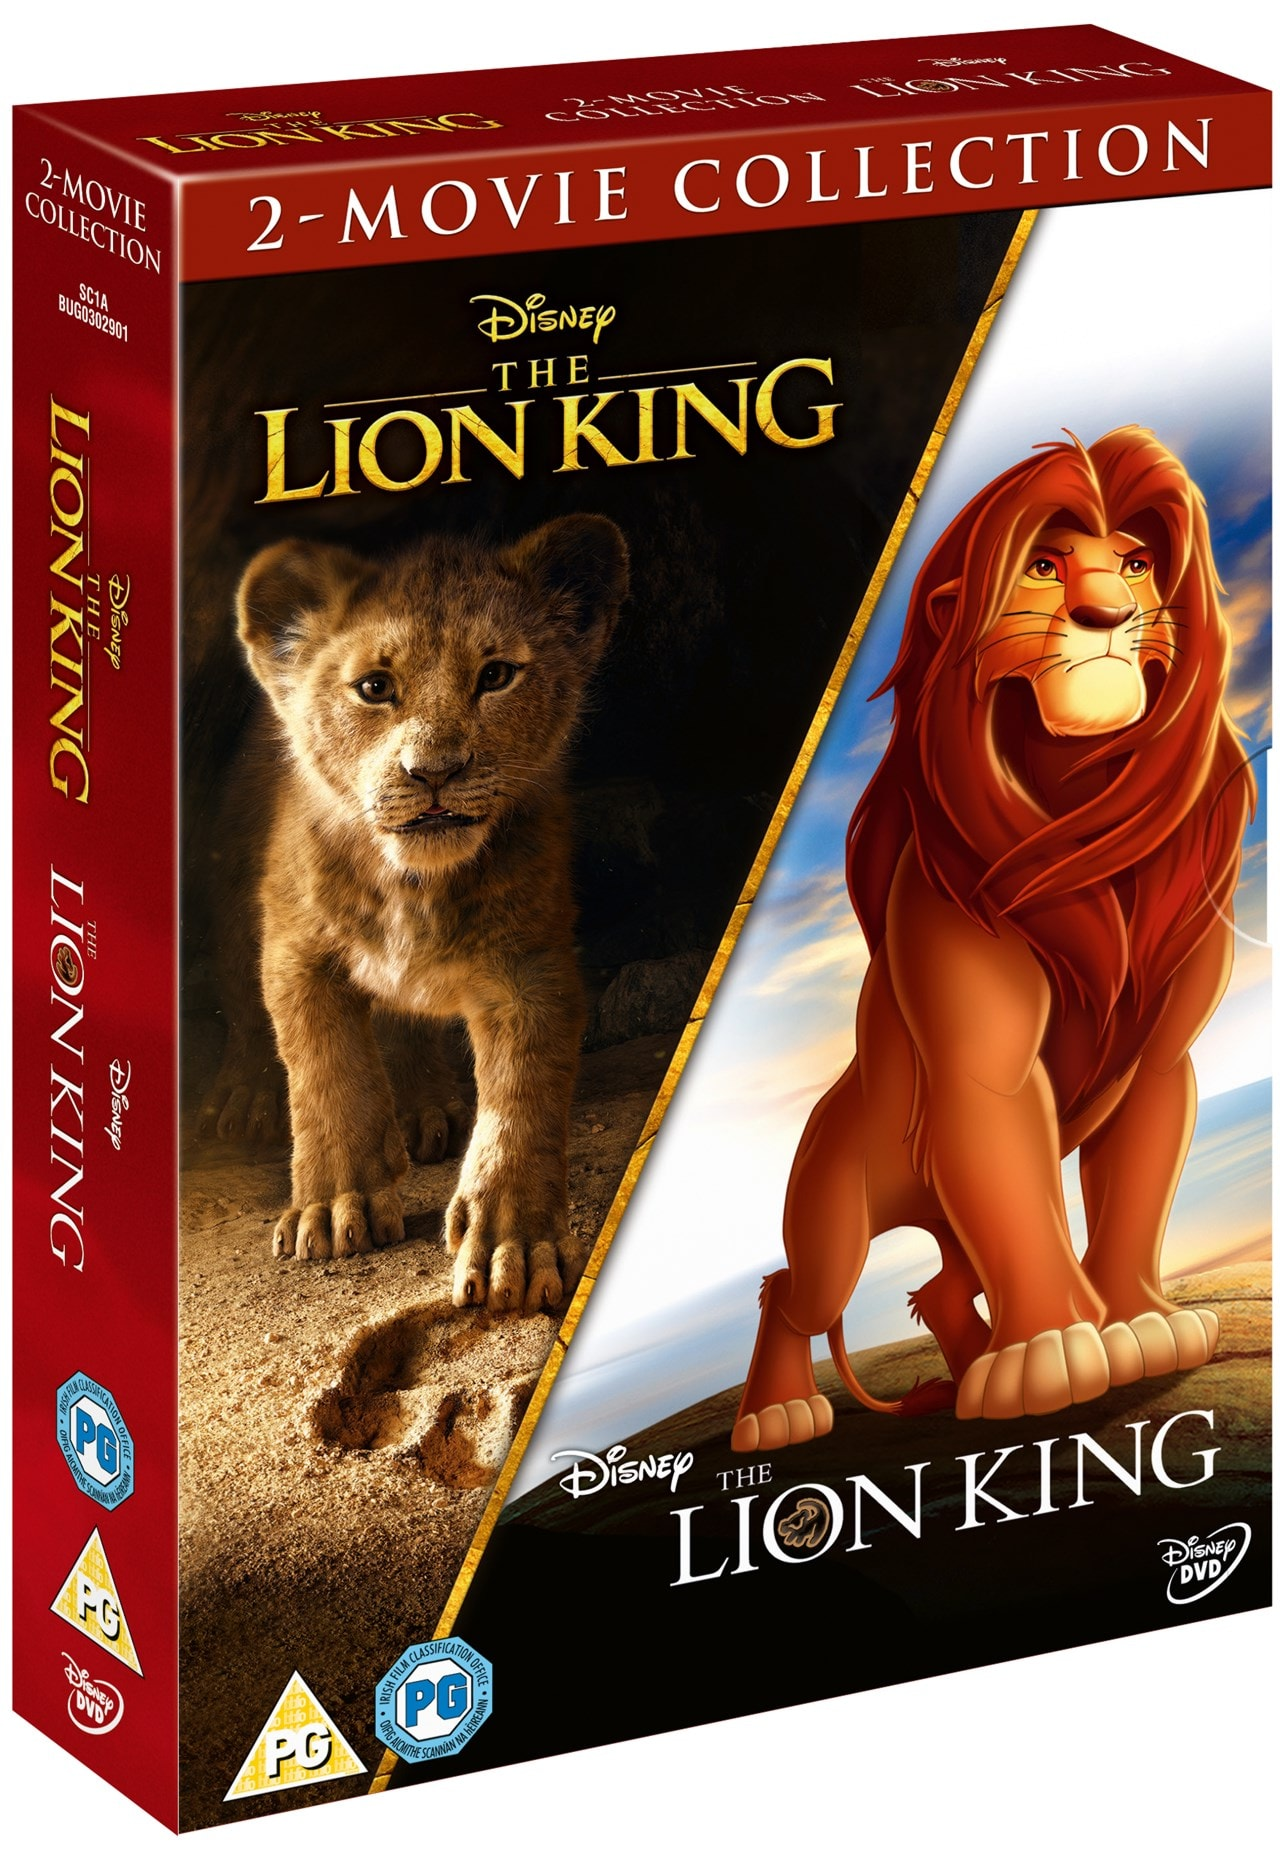 The Lion King: 2-movie Collection - 2